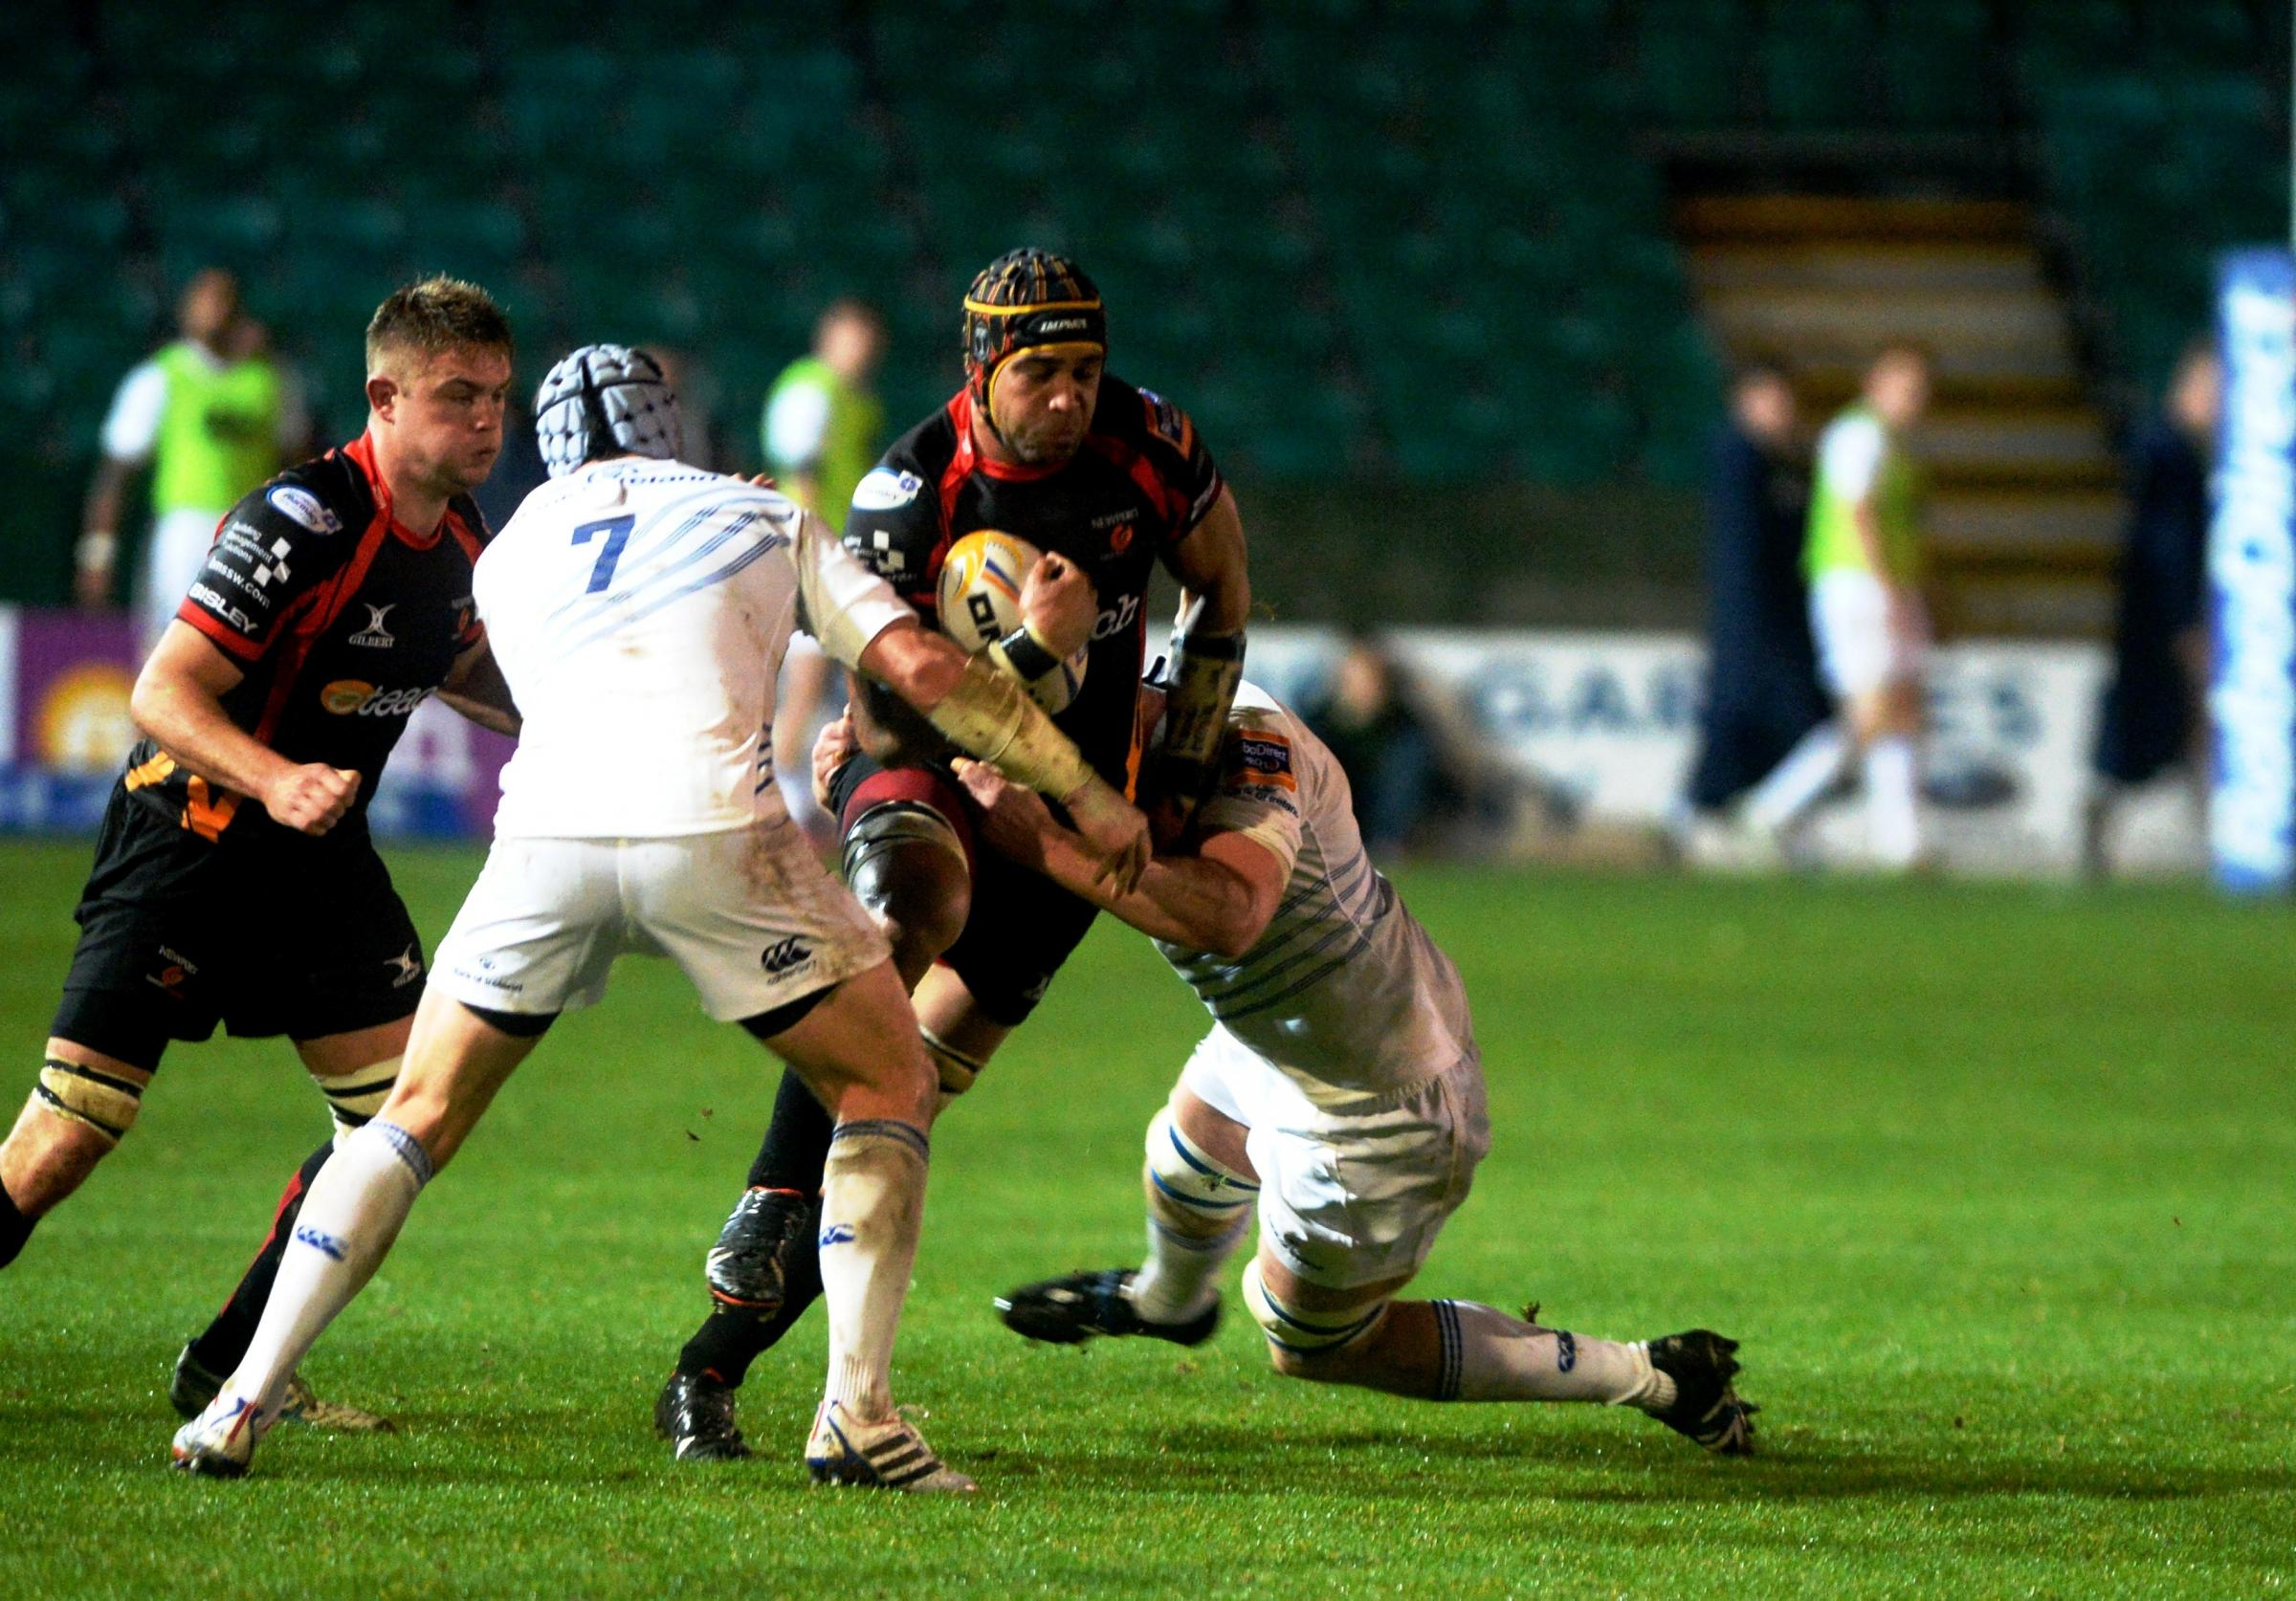 Dublin pain nothing new for Dragons